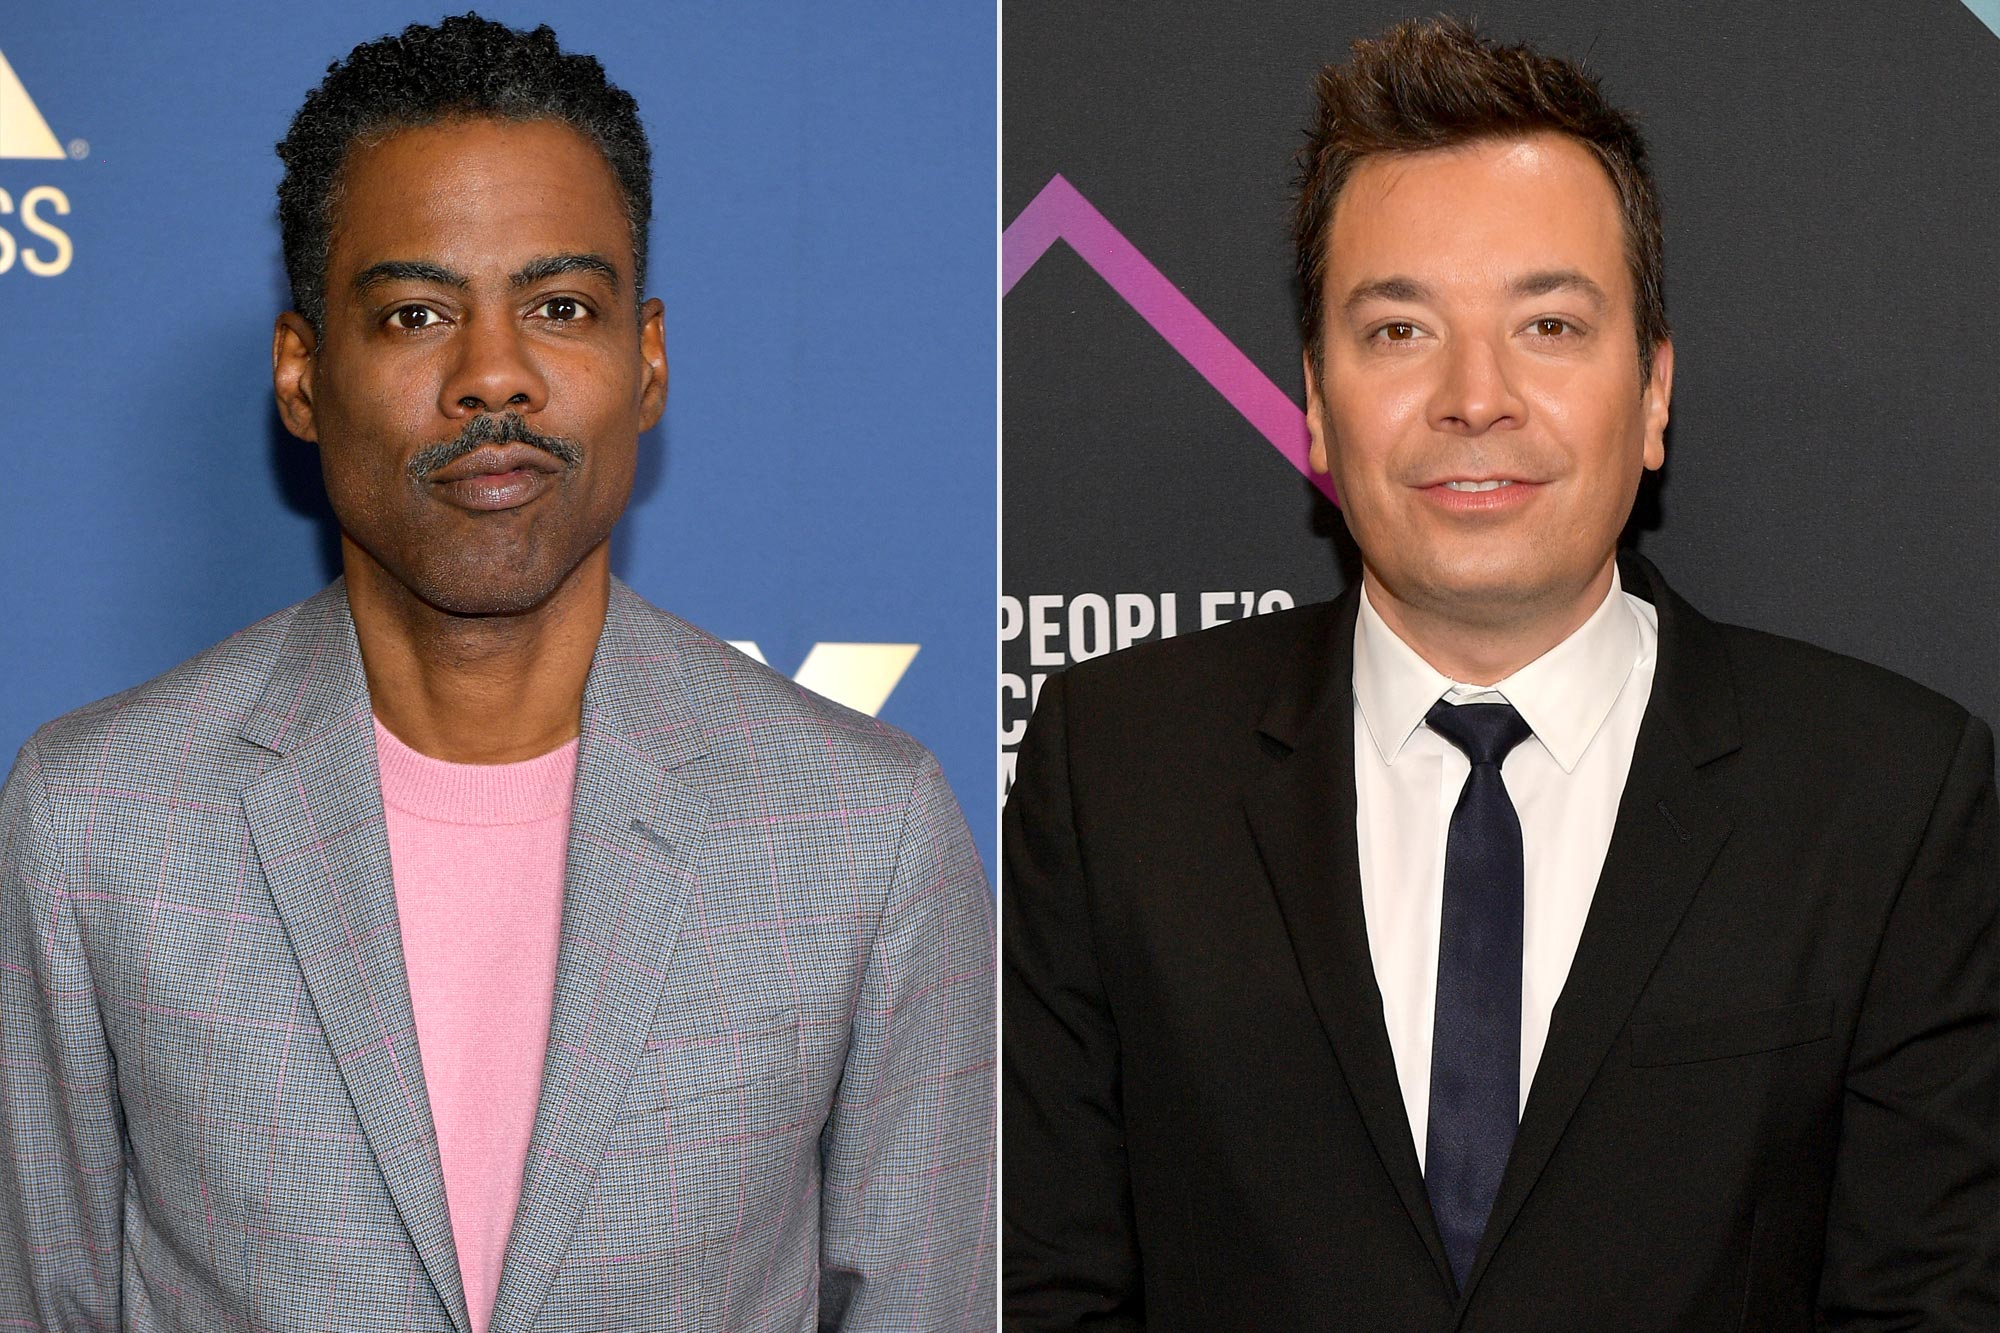 Chris Rock; Jimmy Fallon